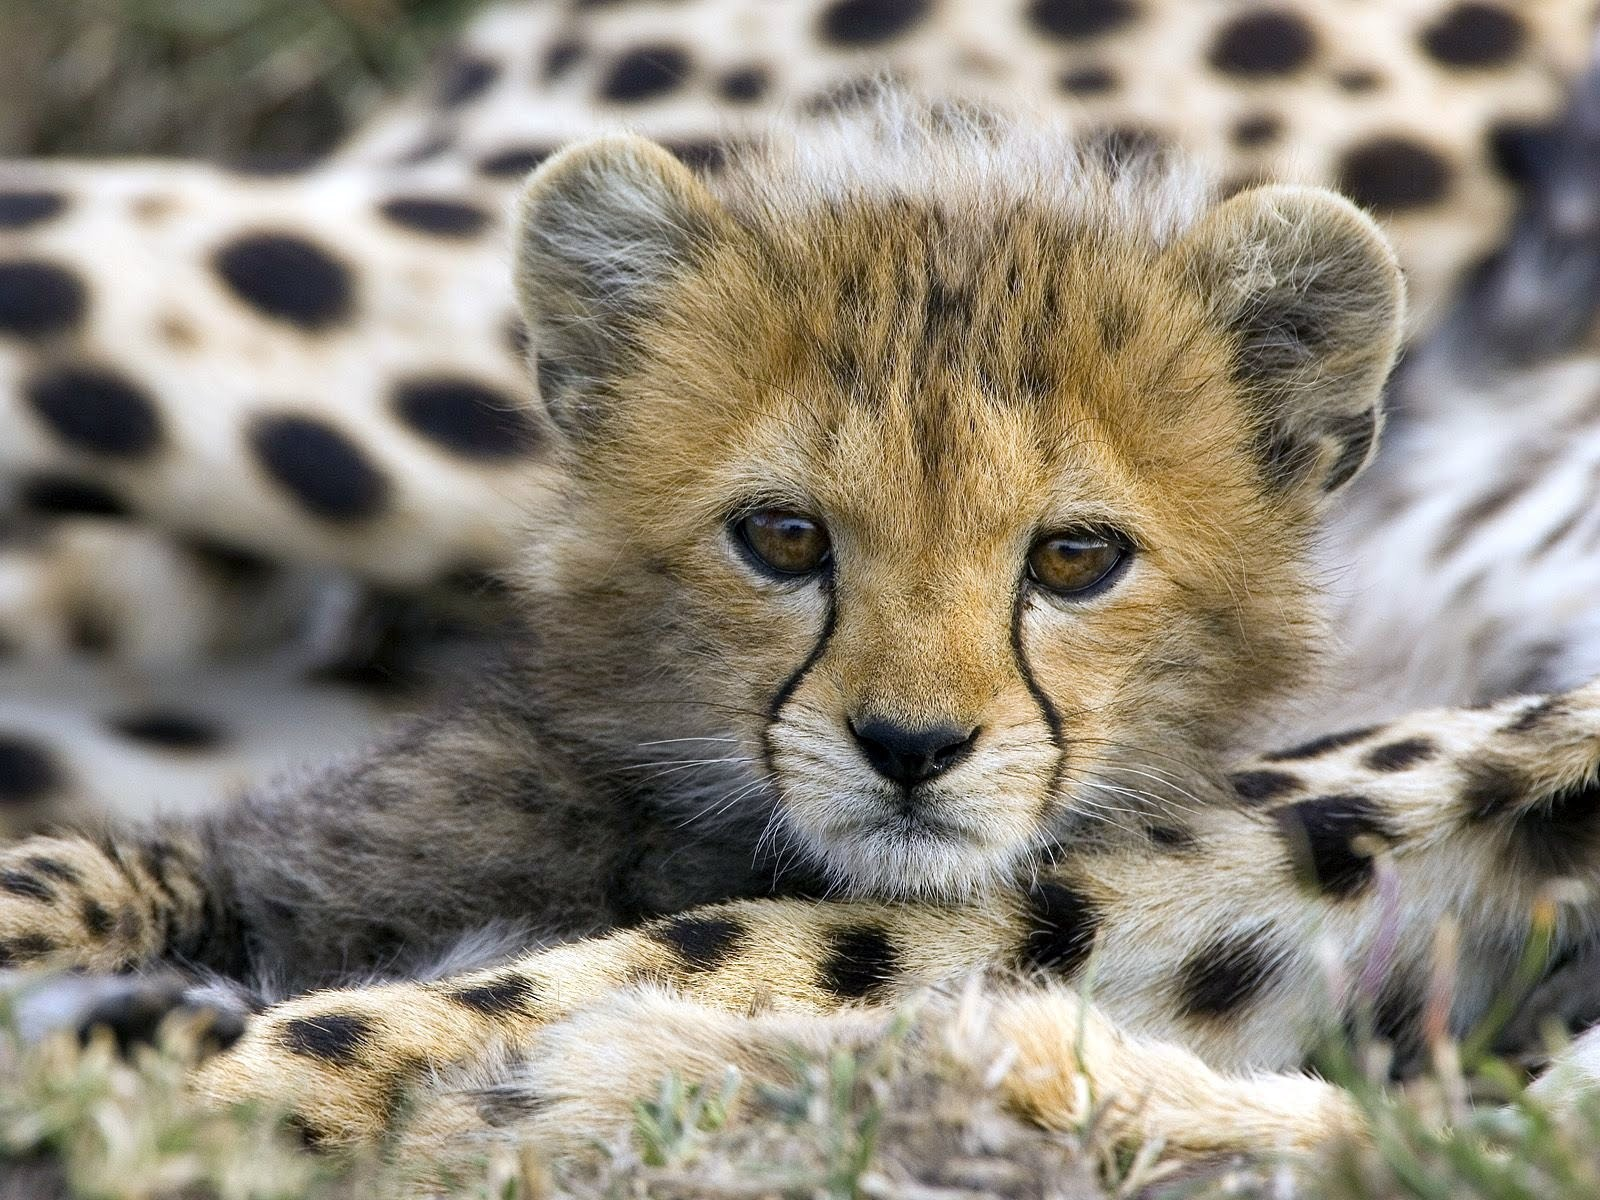 click to free download the wallpaper--Lovely Animal Posts, Cute Cheetah, Close to Family Members, Like Big Kitten 1600X1200 free wallpaper download